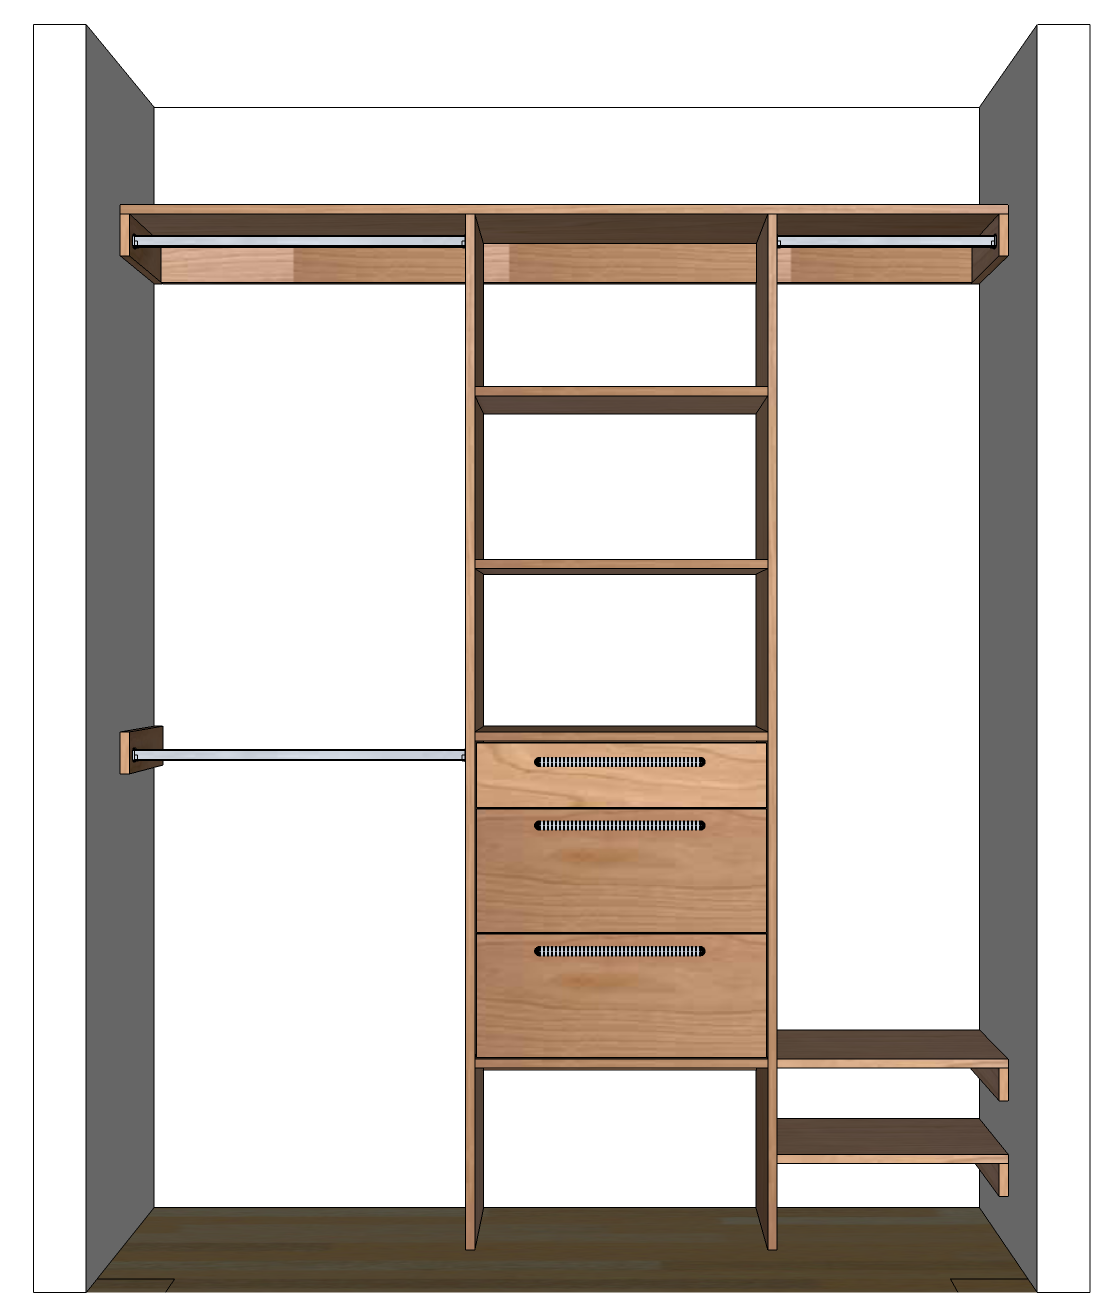 Free Woodworking Plans To Build A Custom Closet Organizer For Wide Reach In Closets Ca Closet Organizer Plans Closet Organization Diy Woodworking Projects Diy